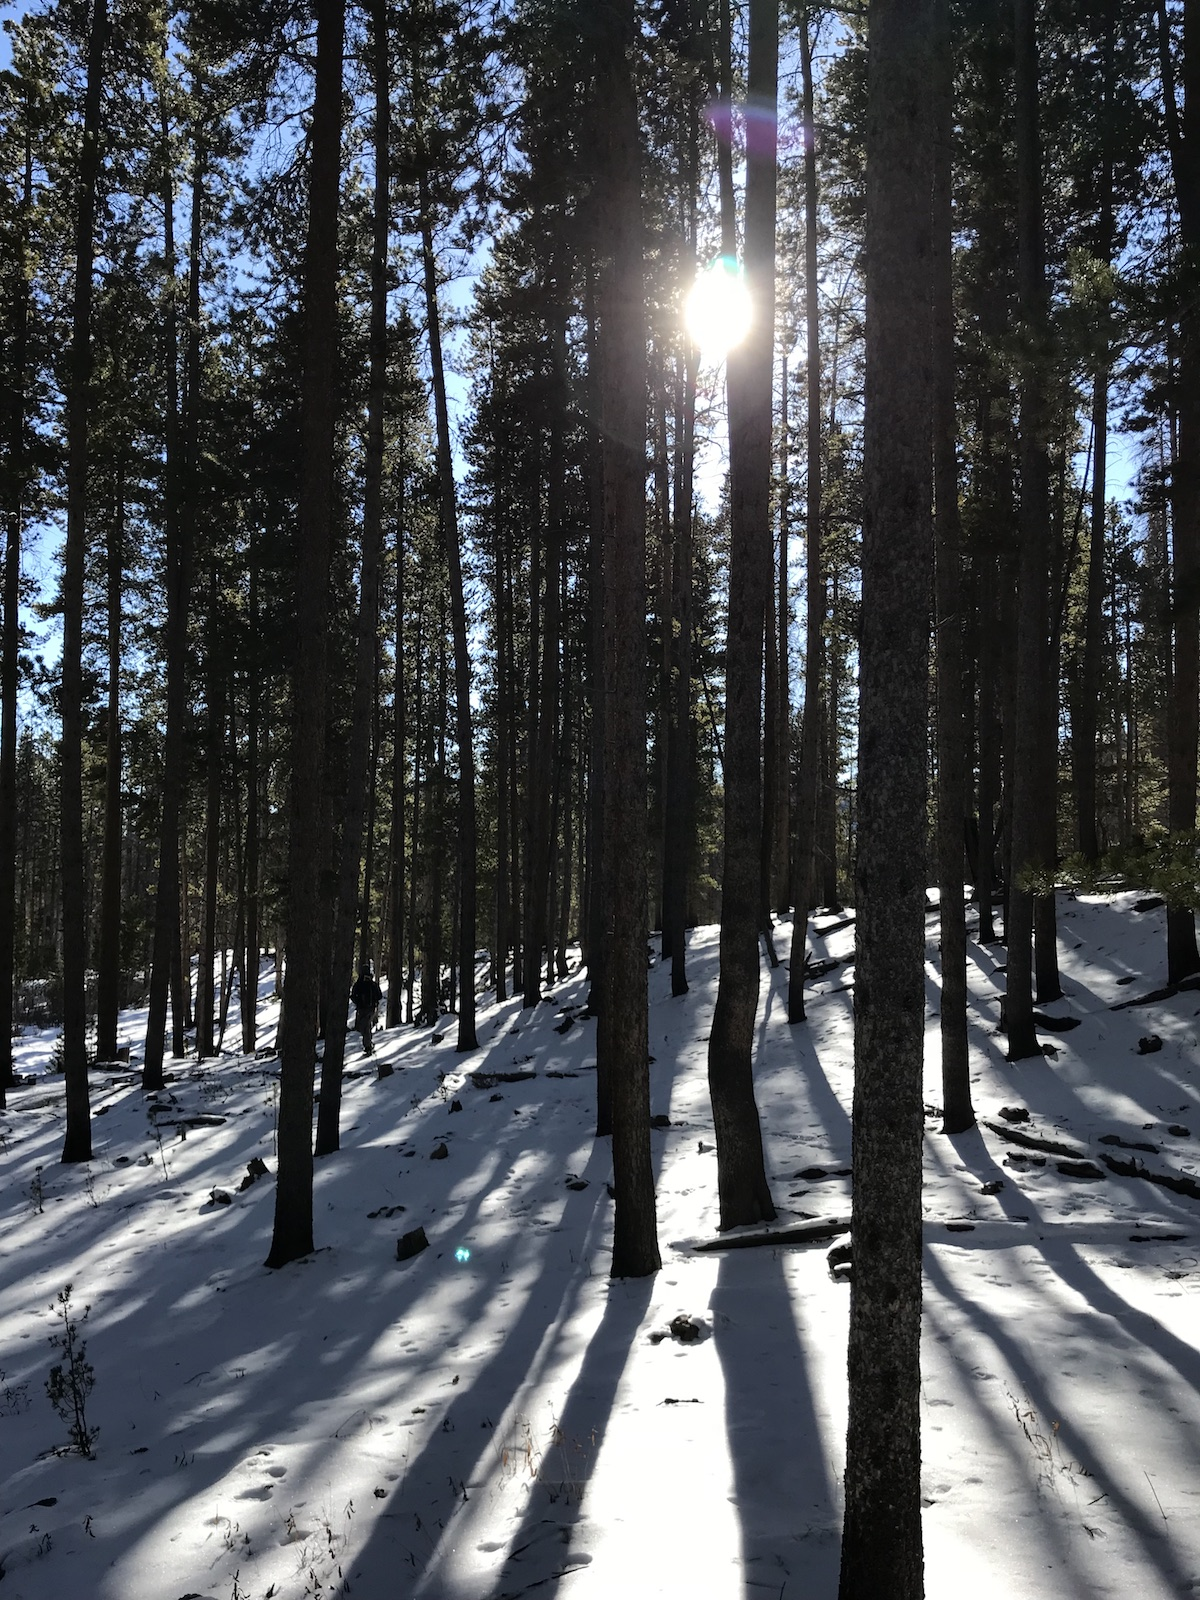 Lodgepole pines in the Medicine Bow National Forest in the Snow Range, Wyoming. [Photo] Katherine Indermaur